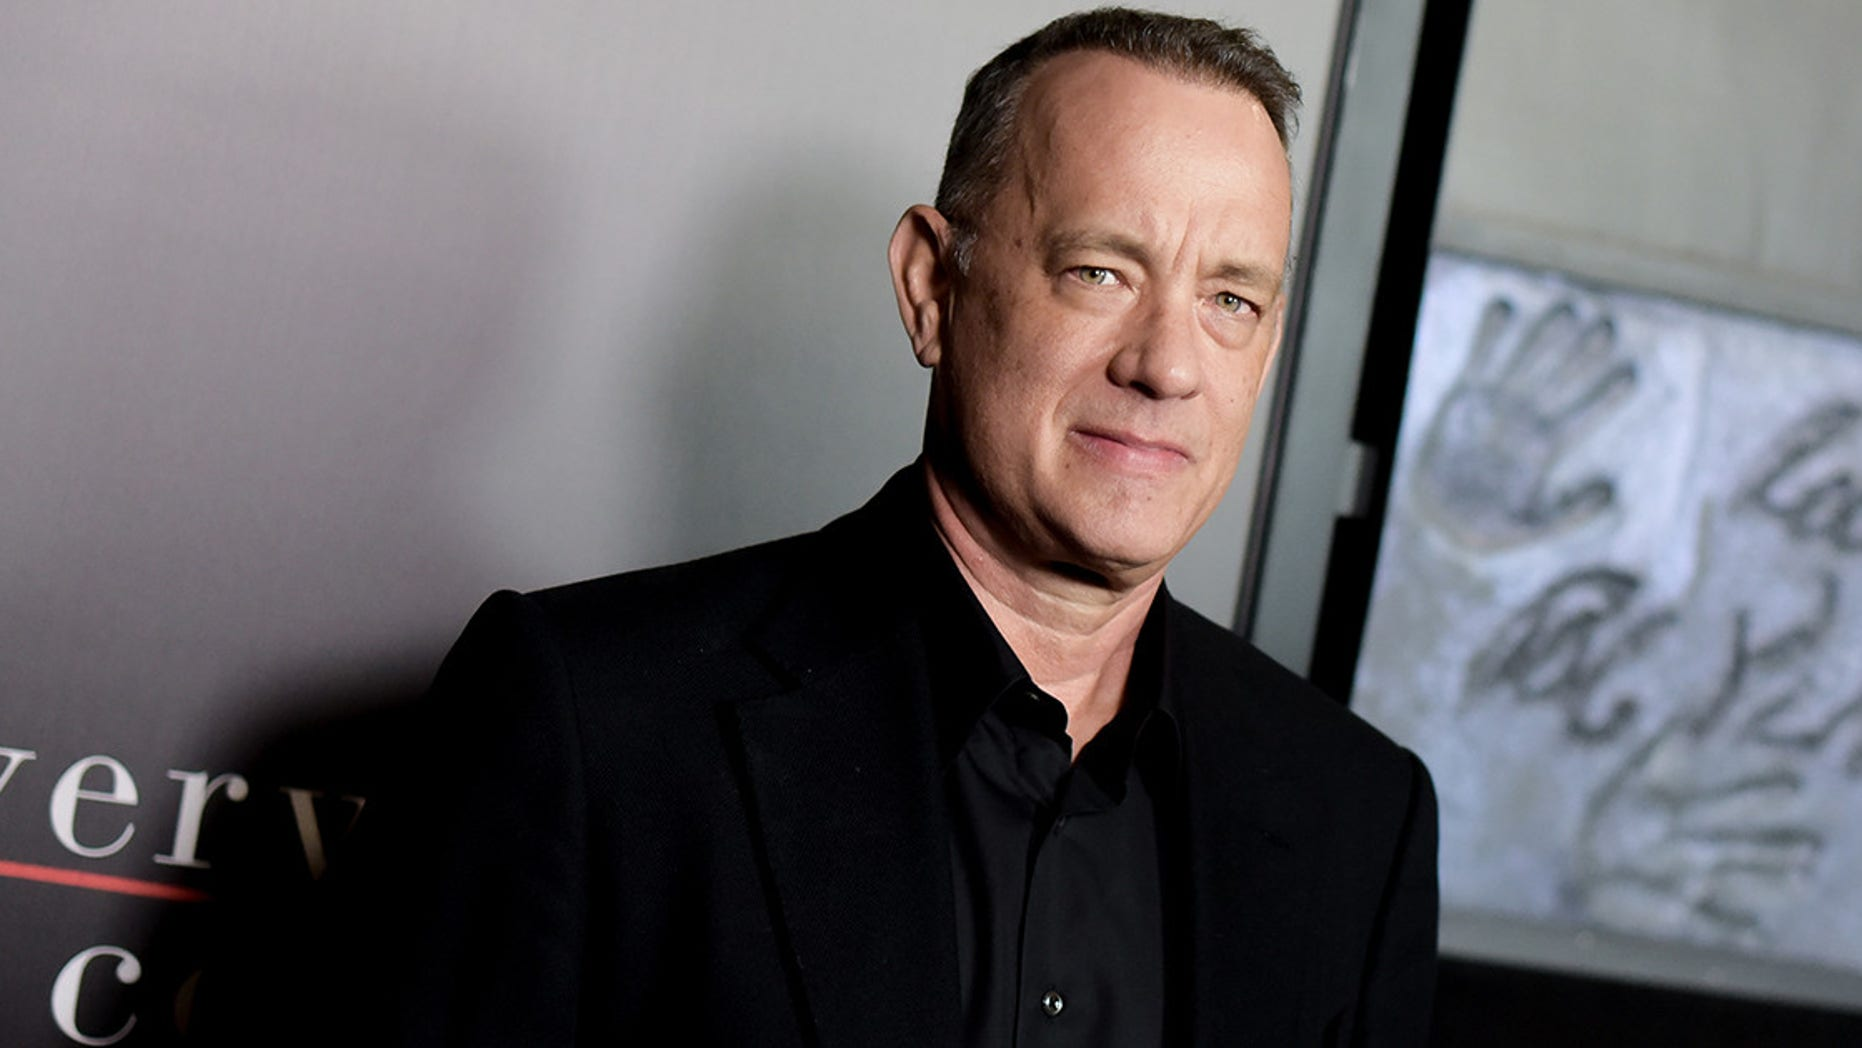 """Tom Hanks returns to silver screen this fall as Captain Chesler Sullenberger in Clint Eastwood's biographical drama """"Sully."""""""